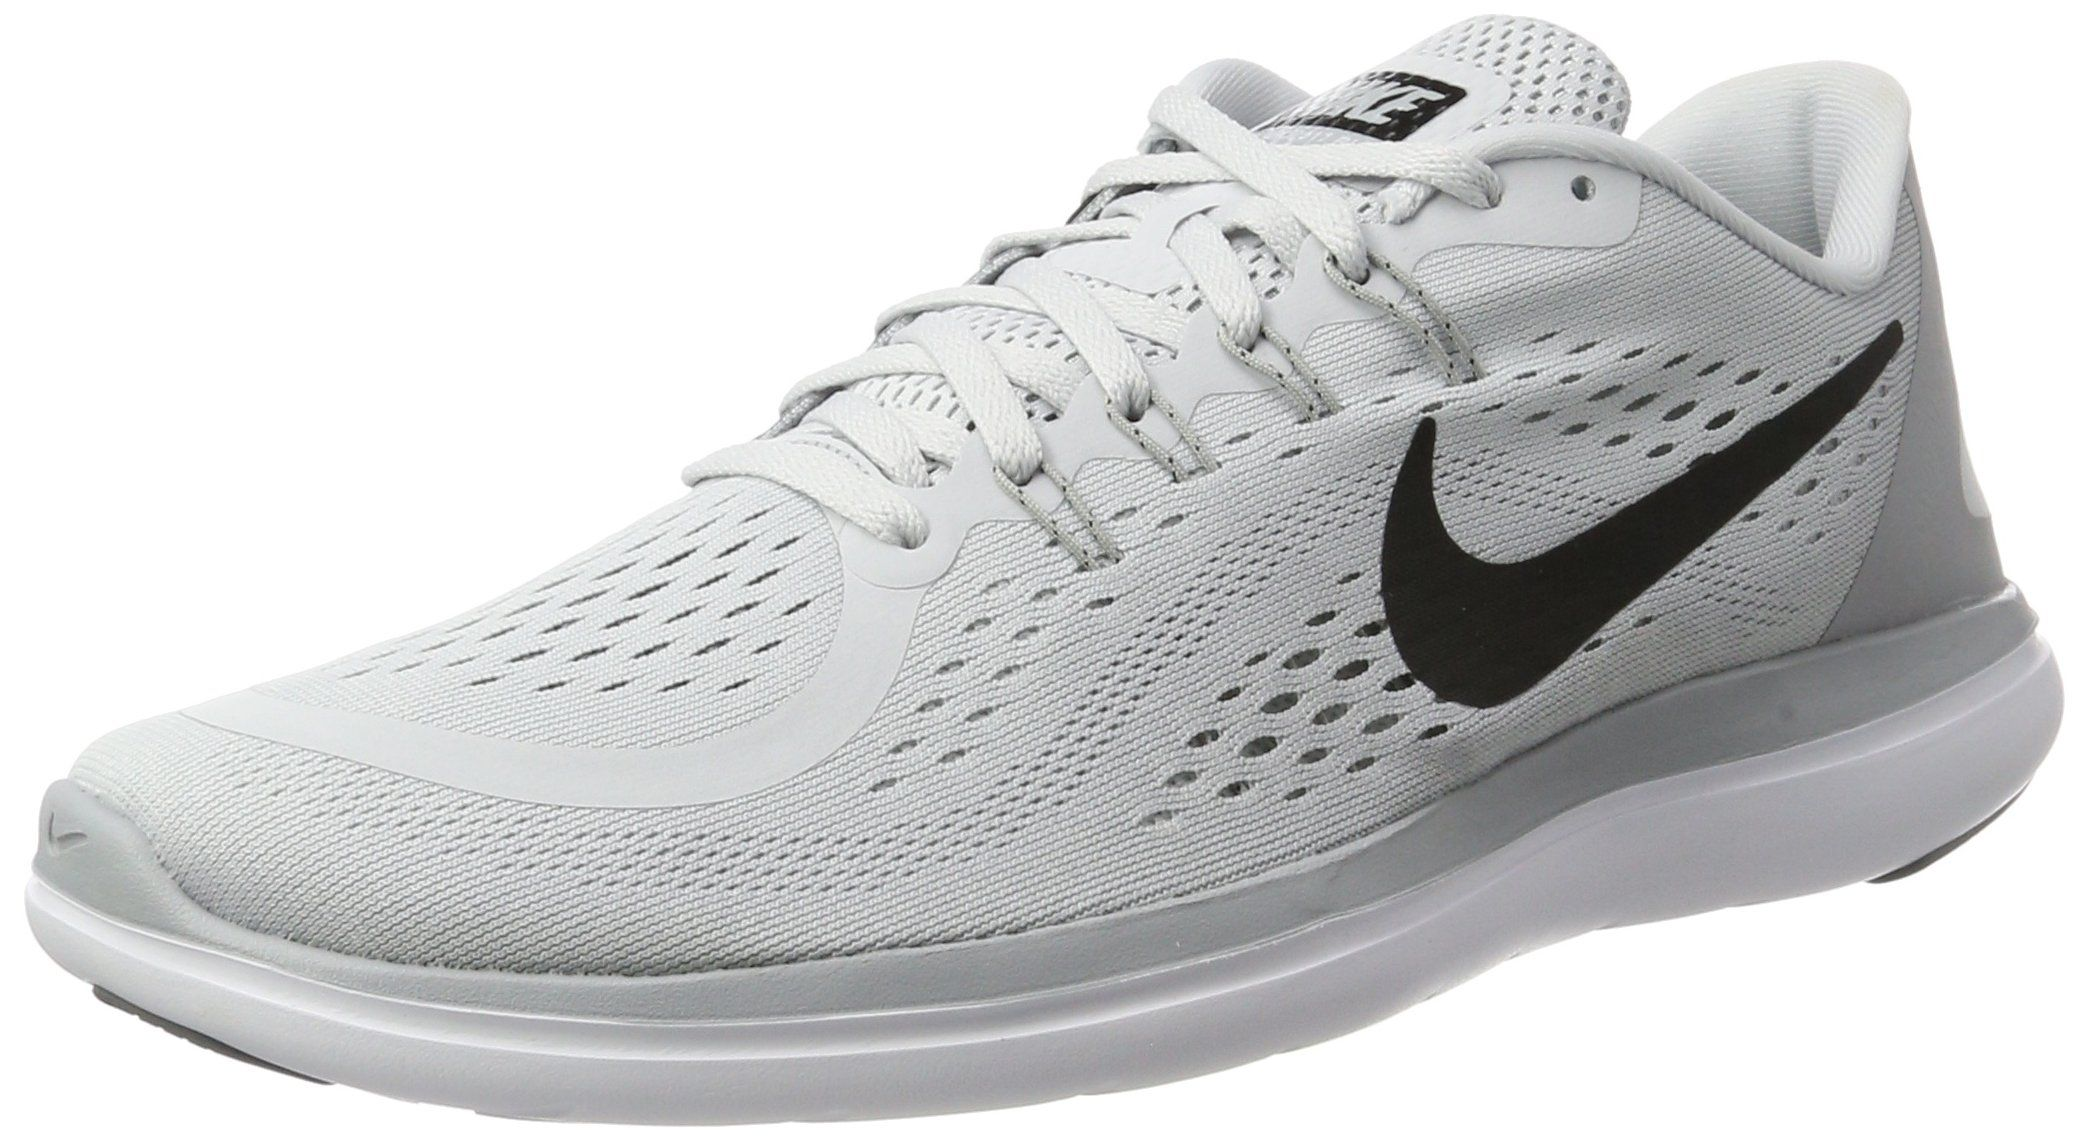 Men\u0027s Nike Flex RN 2017 Running Shoe Pure Platinum/Black/Wolf Grey/Cool Grey  Size 10 M US | Shoes | Pinterest